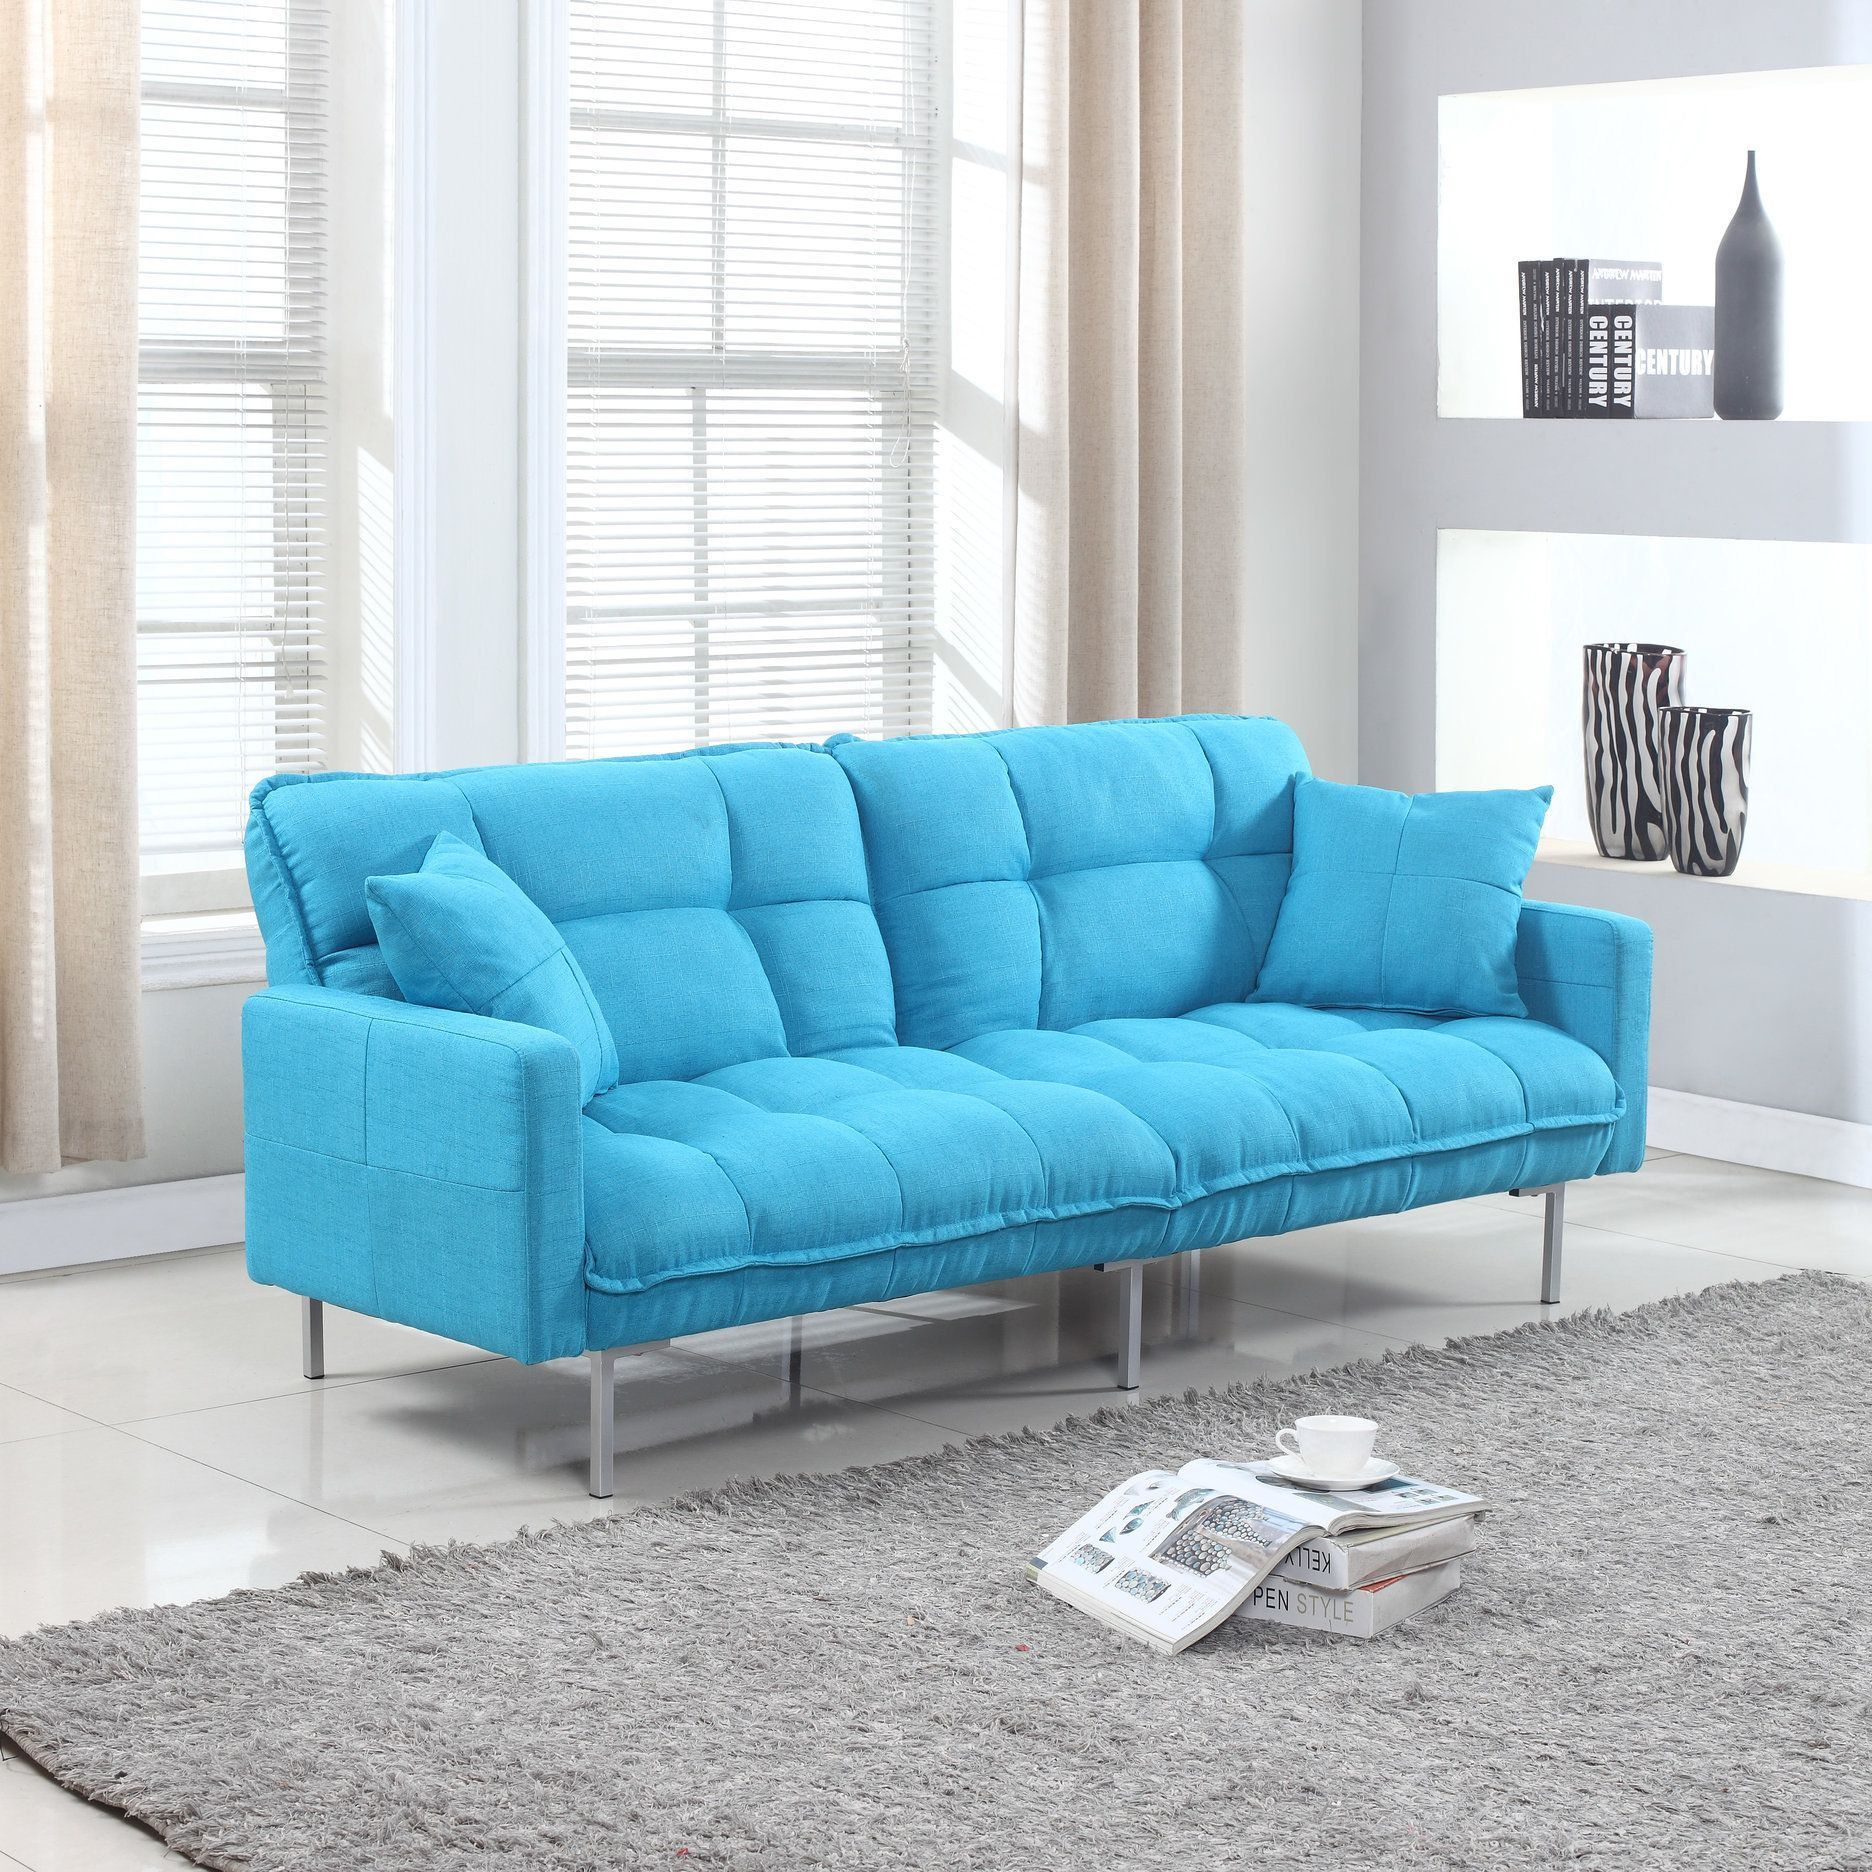 Modern Plush Tufted Linen Fabric Splitback Living Room Sleeper Futon Orange Futon Sofa Sofa Couch Bed Furniture